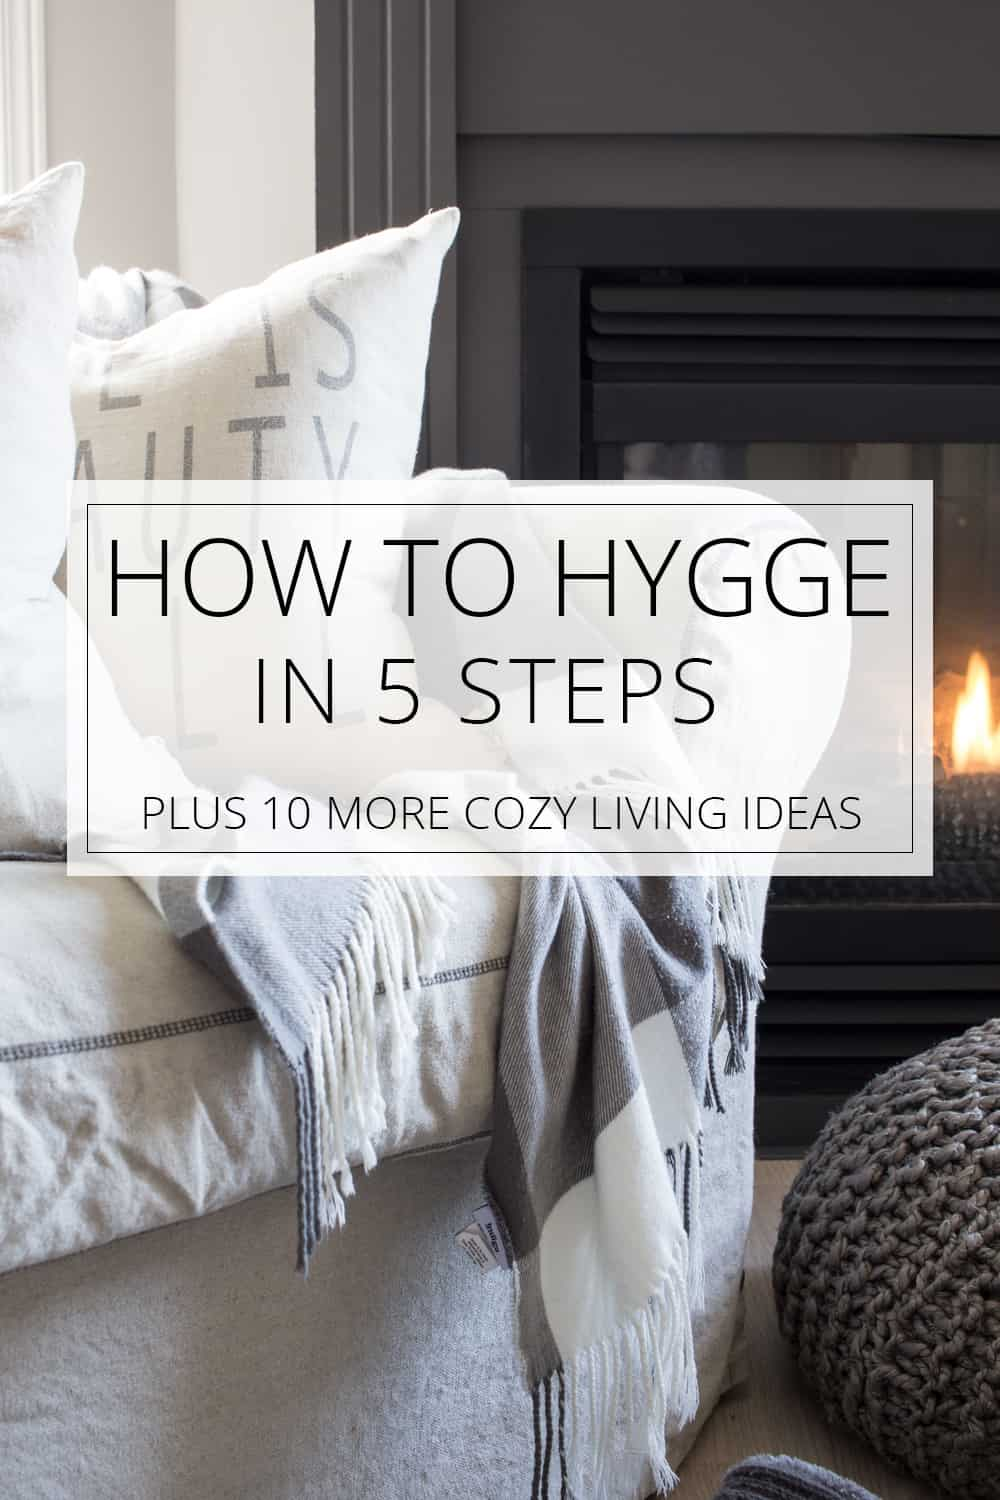 how to hygge in 5 steps